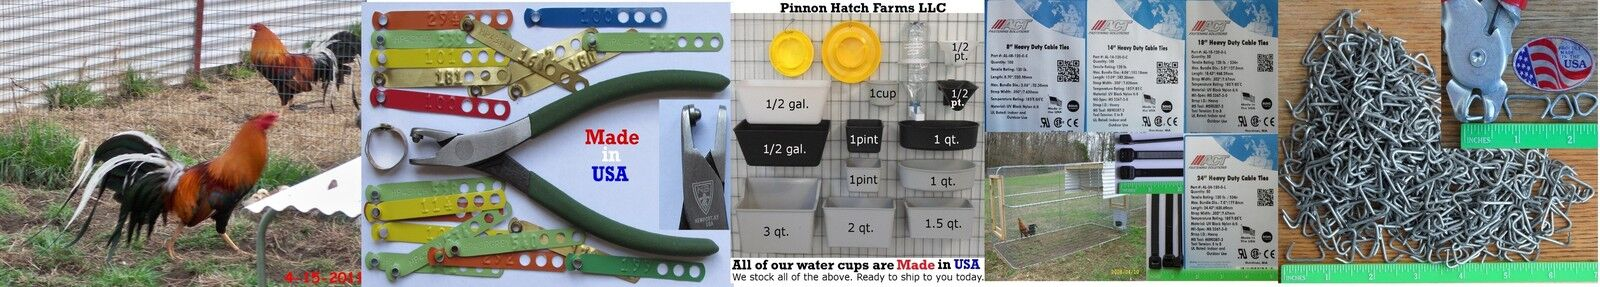 Pinnon Hatch Farms LLC